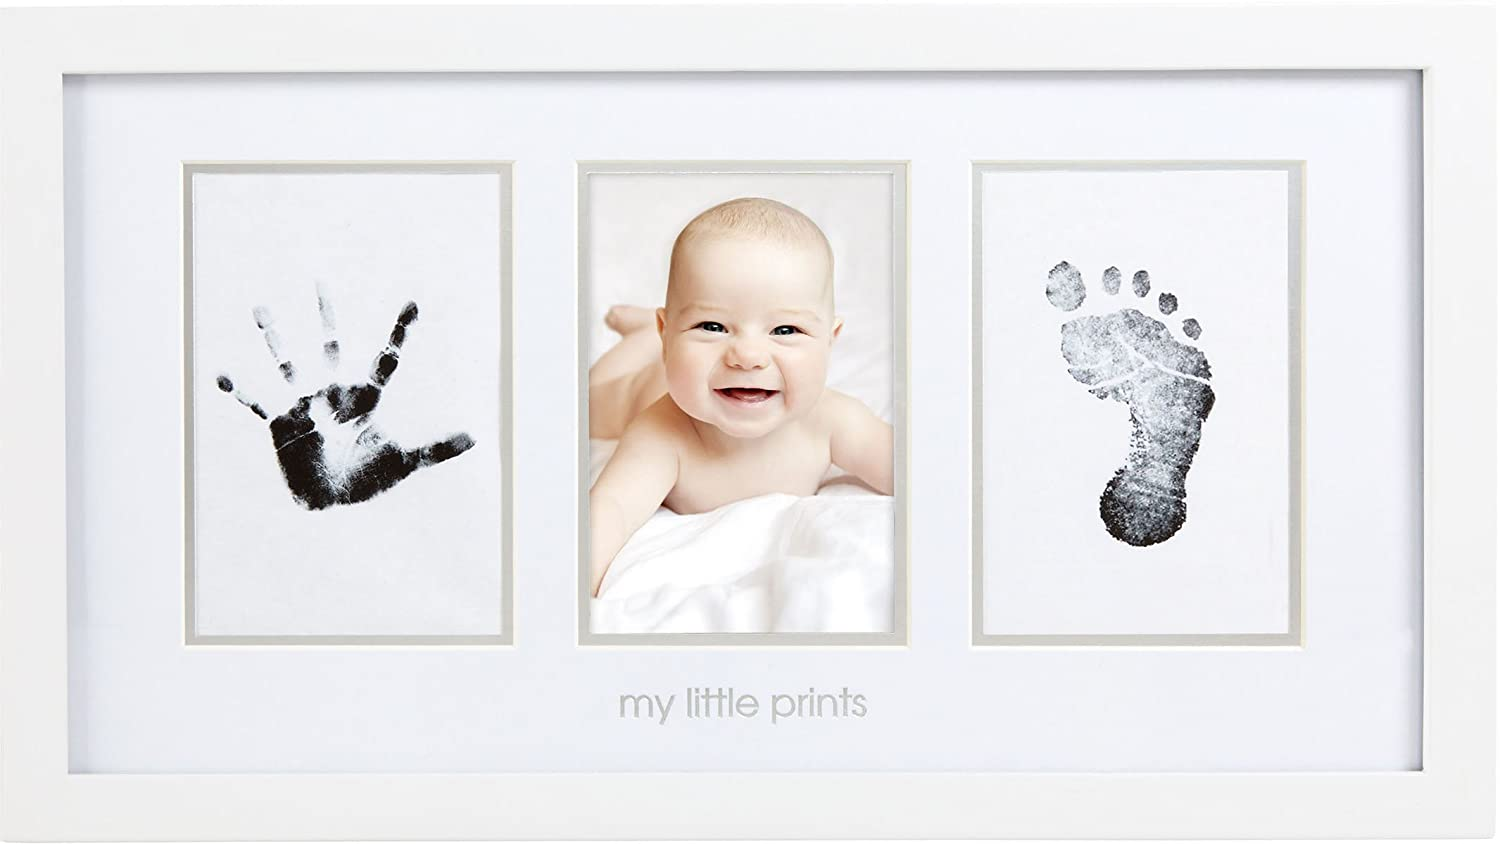 Pearhead Babyprints Newborn Baby Handprint and Footprint Photo Frame Kit with Included Safe for Baby Clean-Touch Ink Pad, White P63002